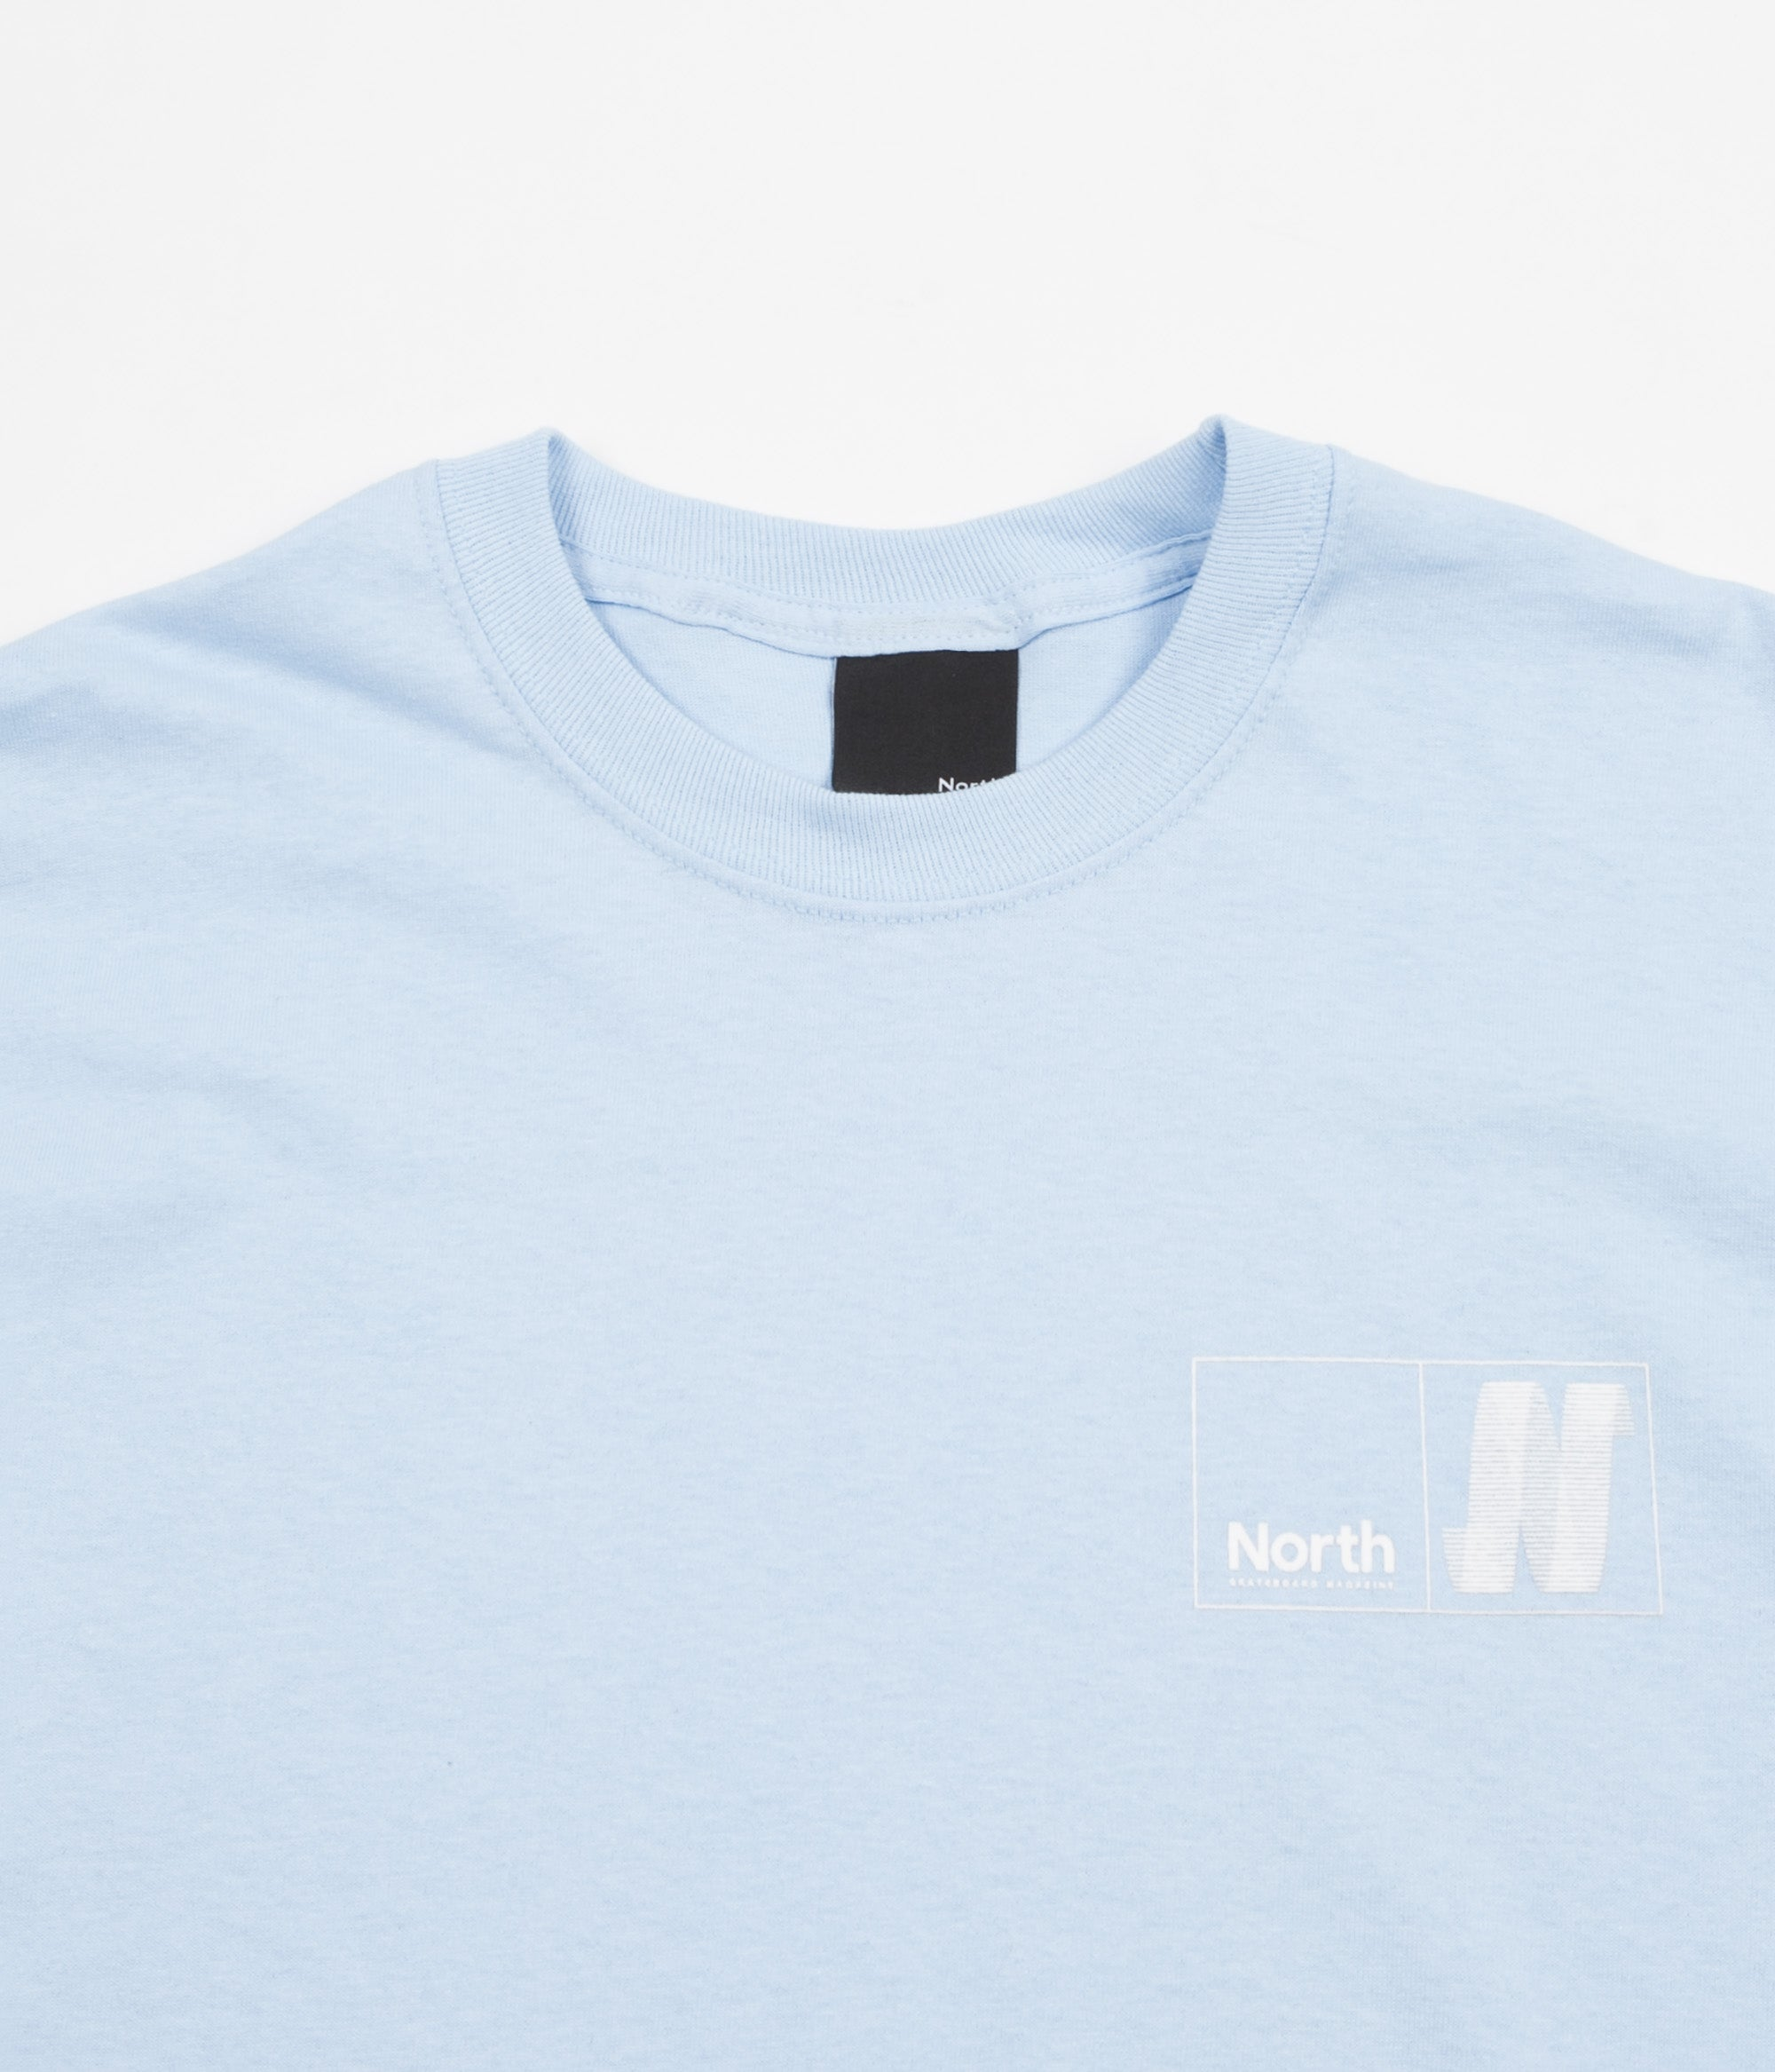 North Skateboard Magazine N Logo Long Sleeve T-Shirt - Light Blue / White